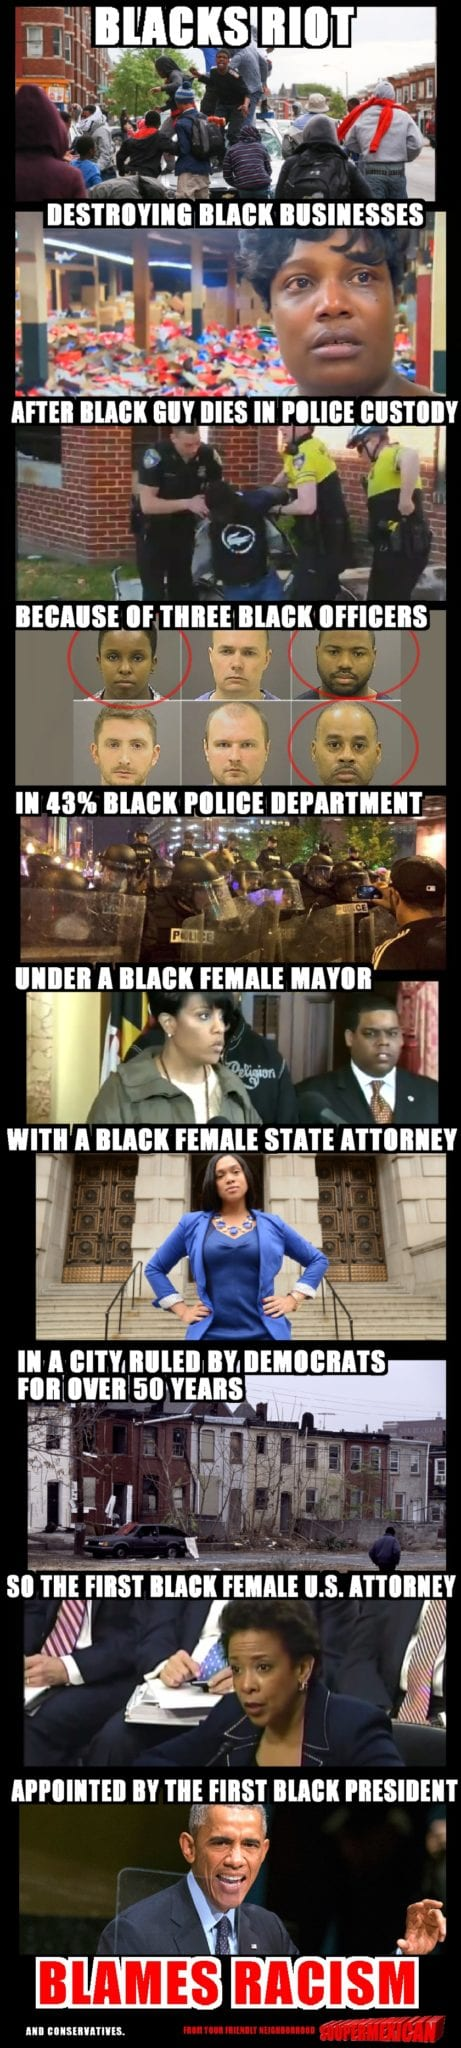 THE BALTIMORE STORY, Because Racism